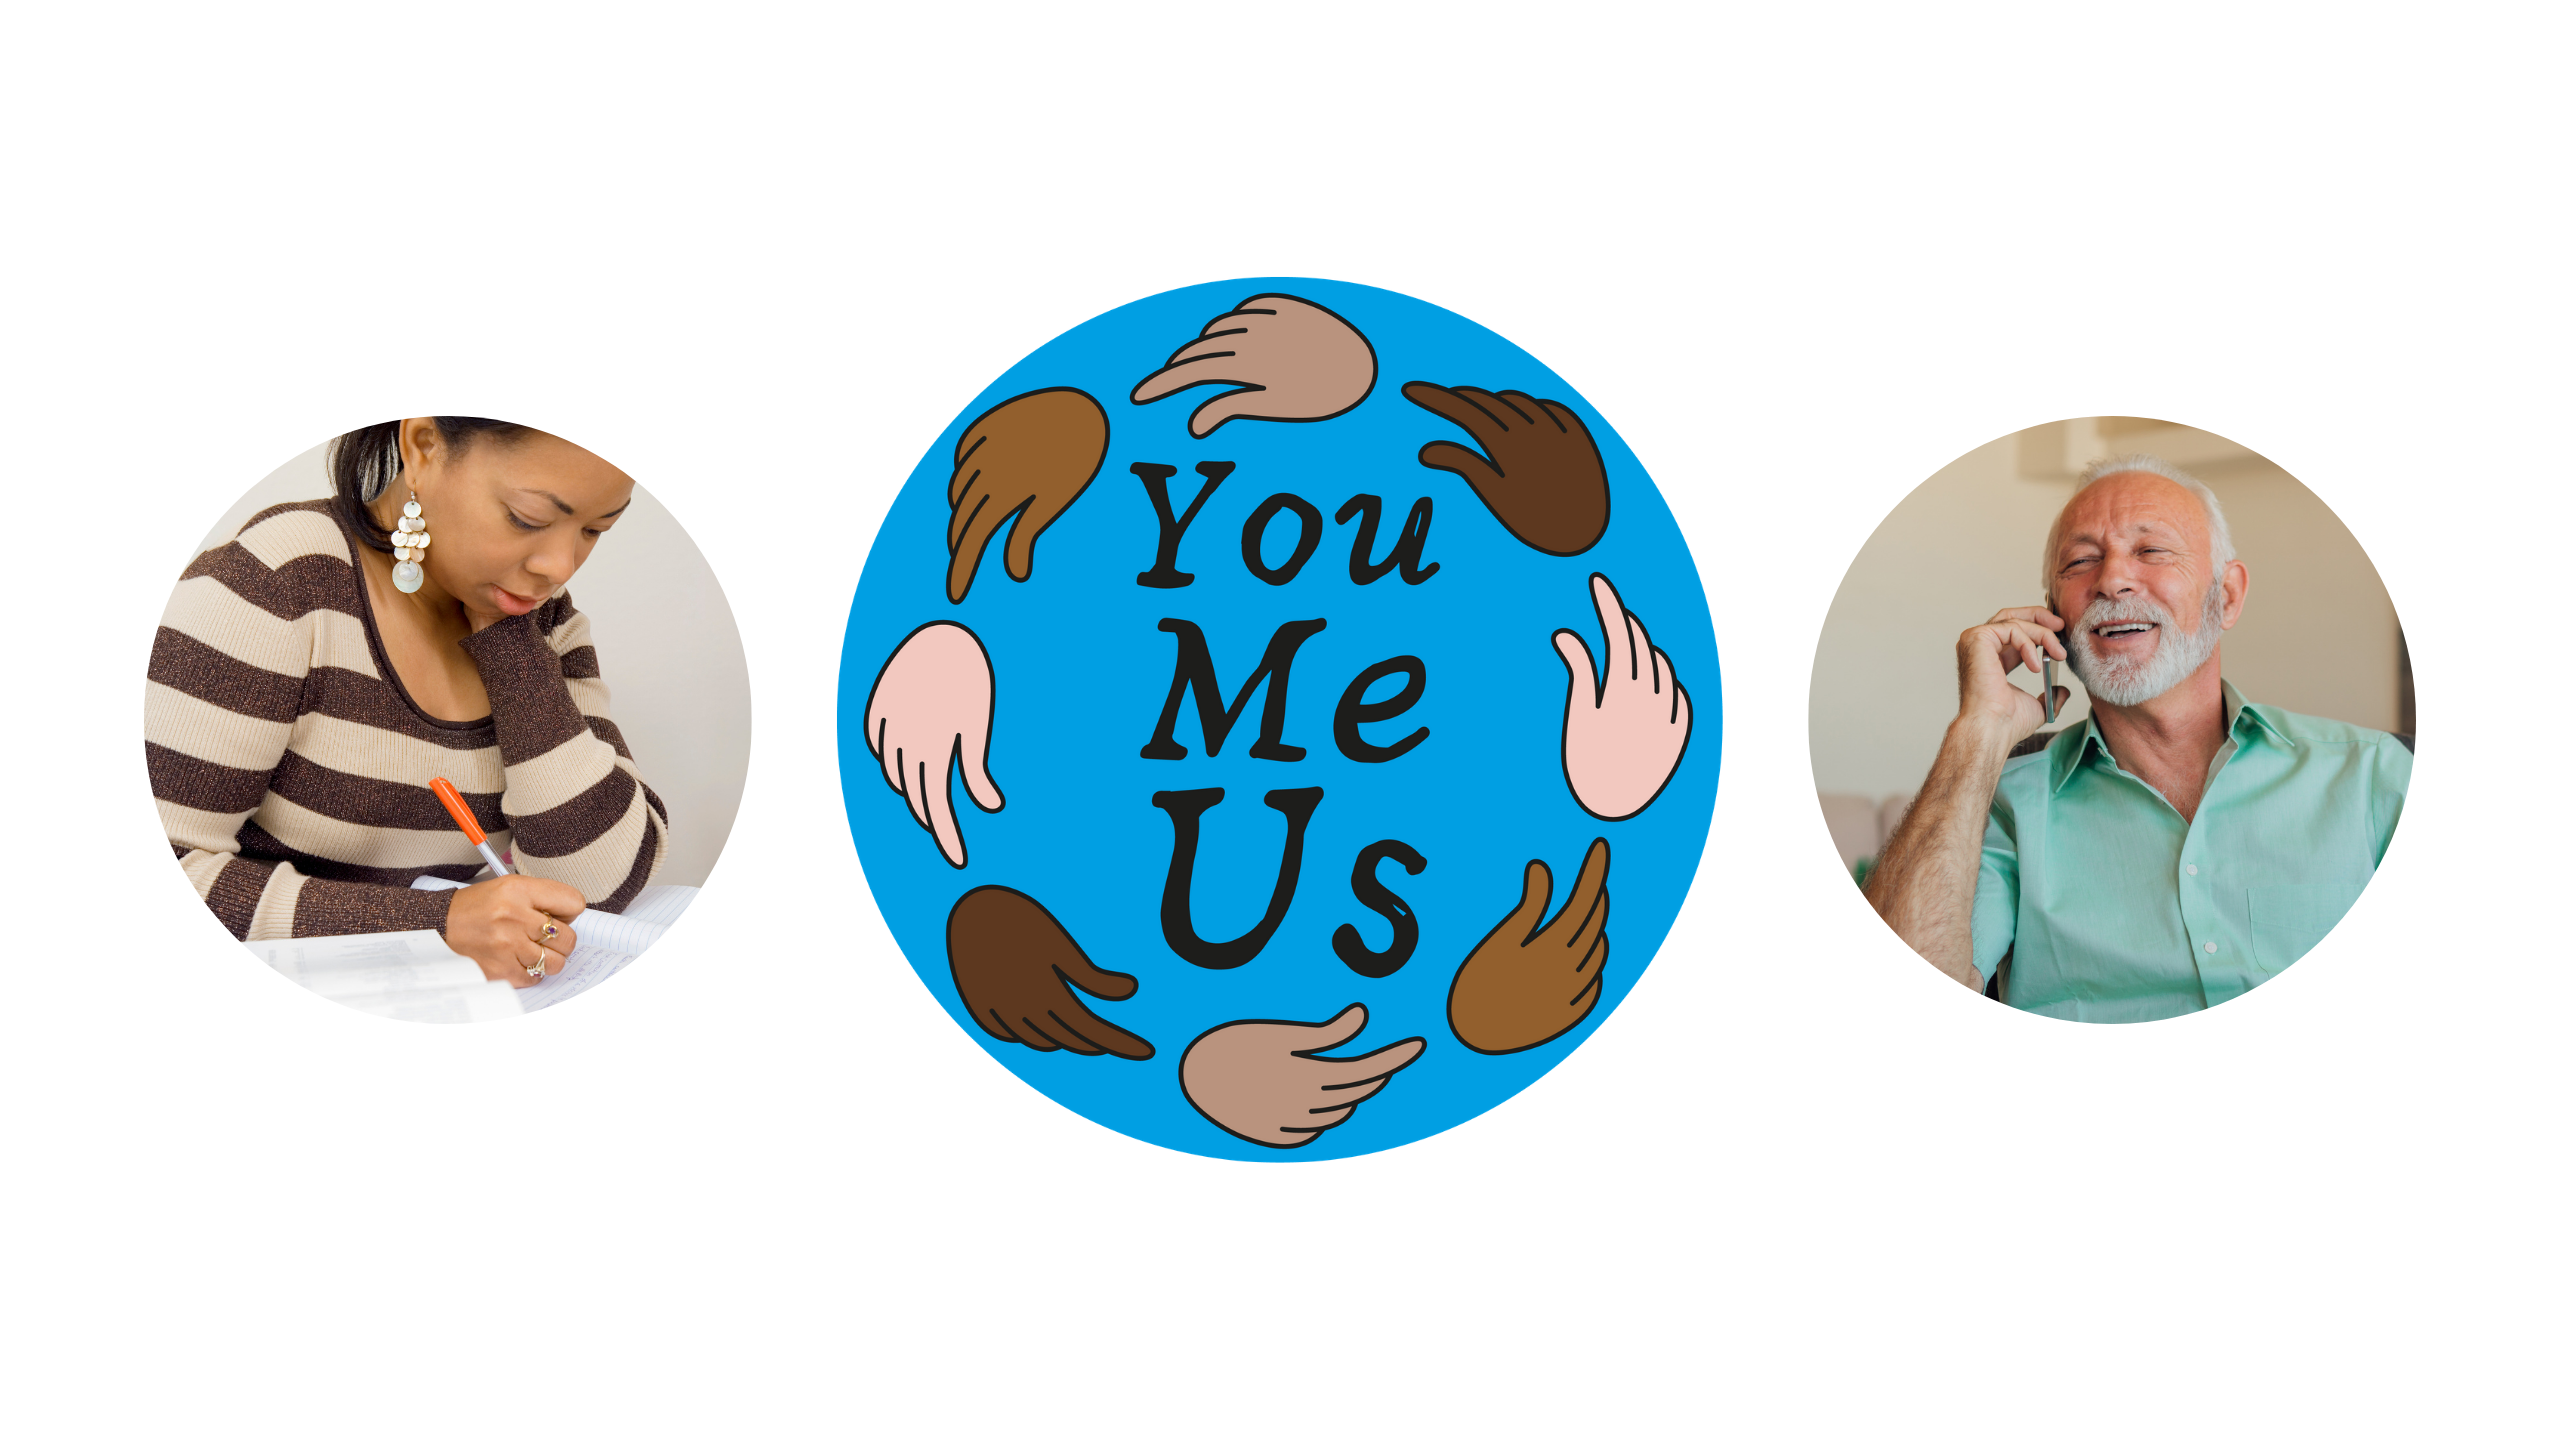 On the left in a circle, a black woman is concentrating on writing in a notebook. Next is the You Me Us project logo which is a blue circle with hands of different skintones around it. In the centre of the circle are the words You Me Us. To the right in a circle frame is a older white man with grey beard. He is talking to someone on a mobile phone. He is smiling as he is talking.